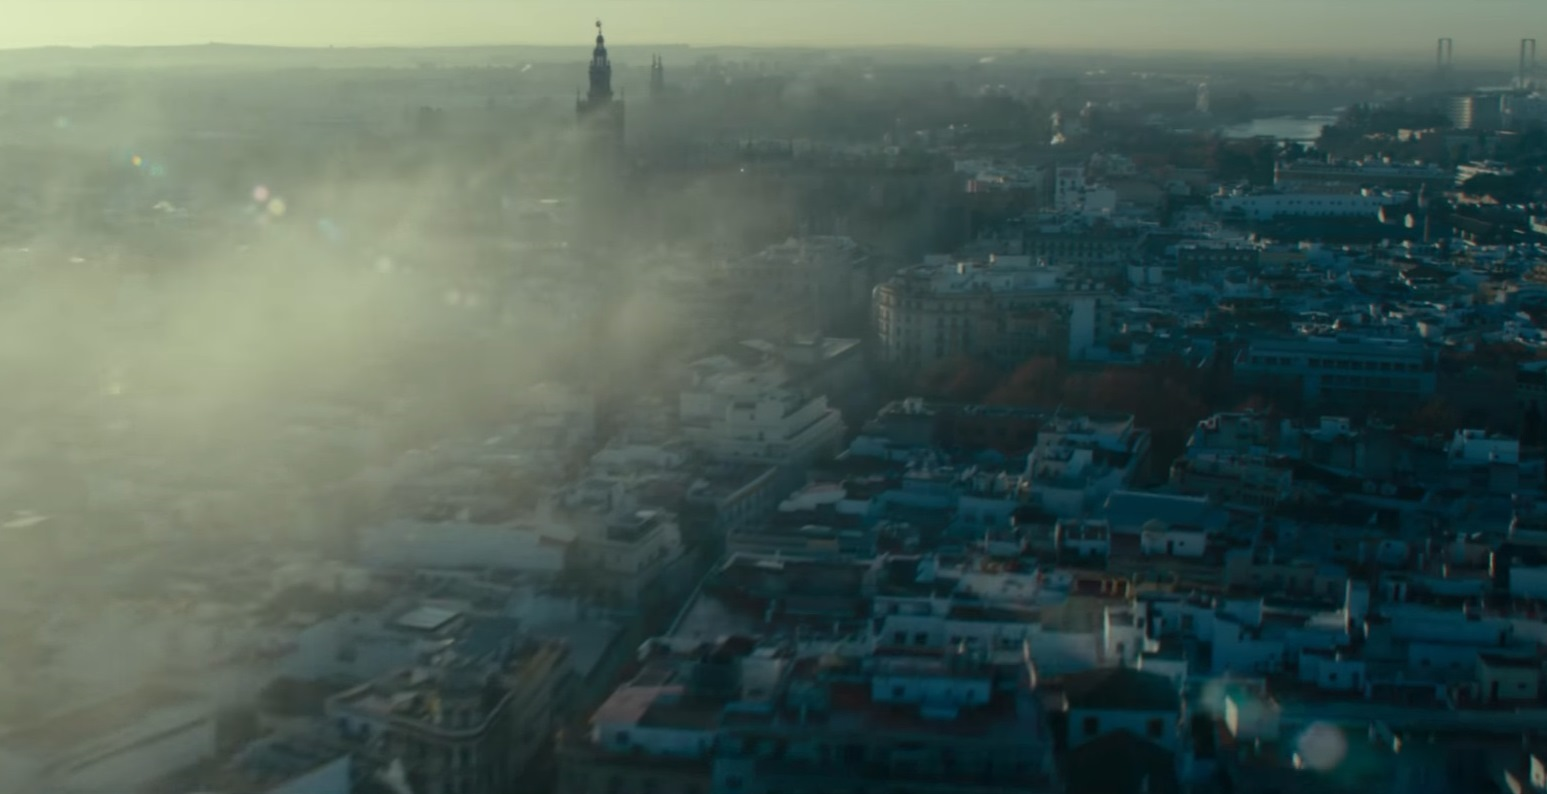 cinematogrill assassin's creed critique analyse 5